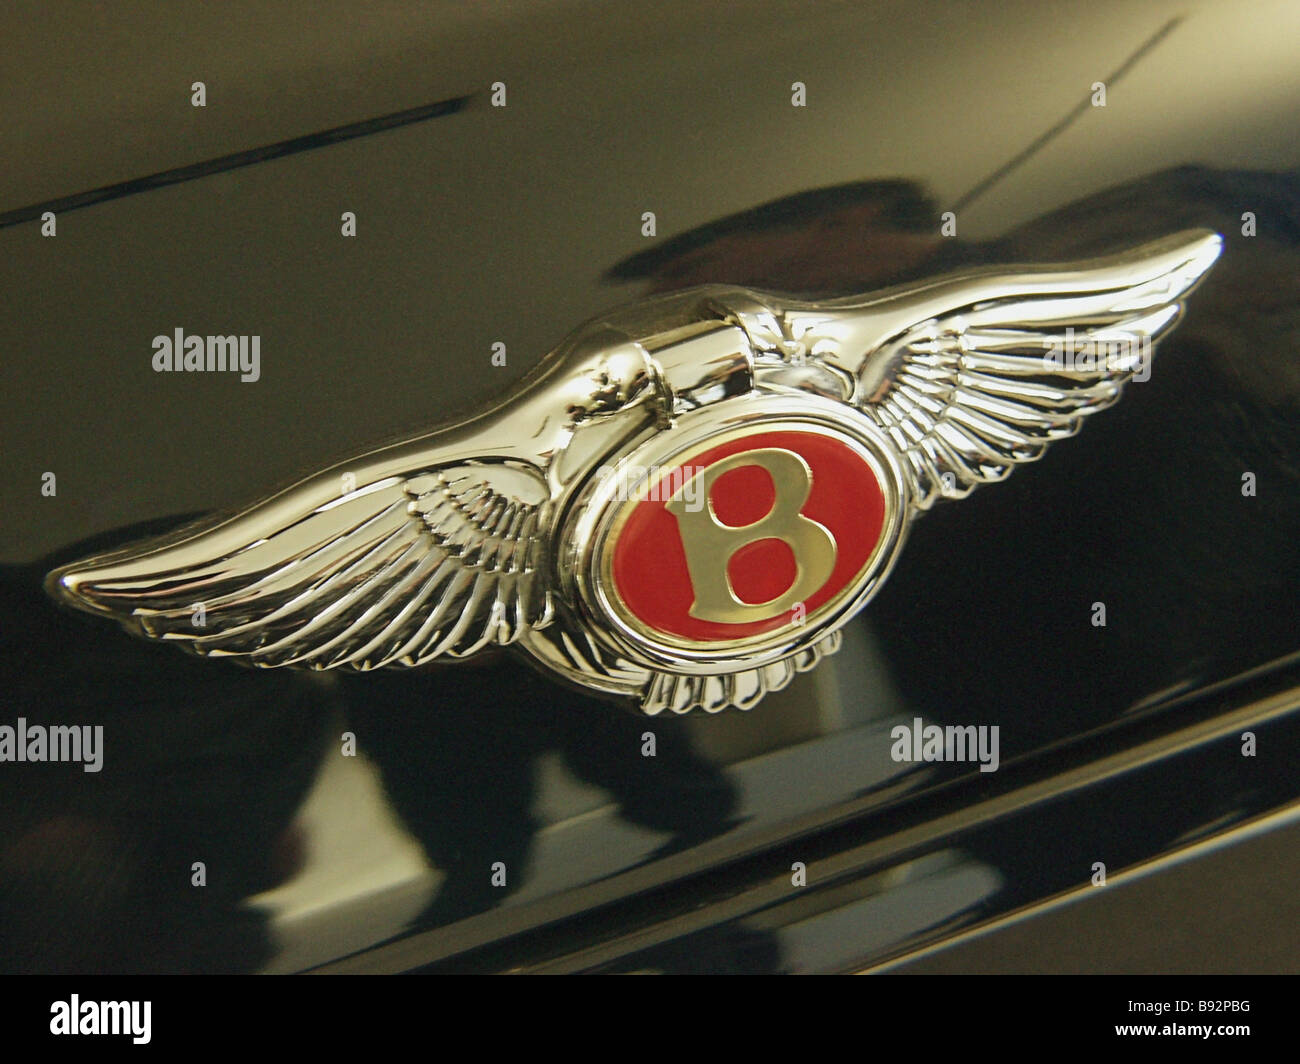 Bentley Logo High Resolution Stock Photography And Images Alamy